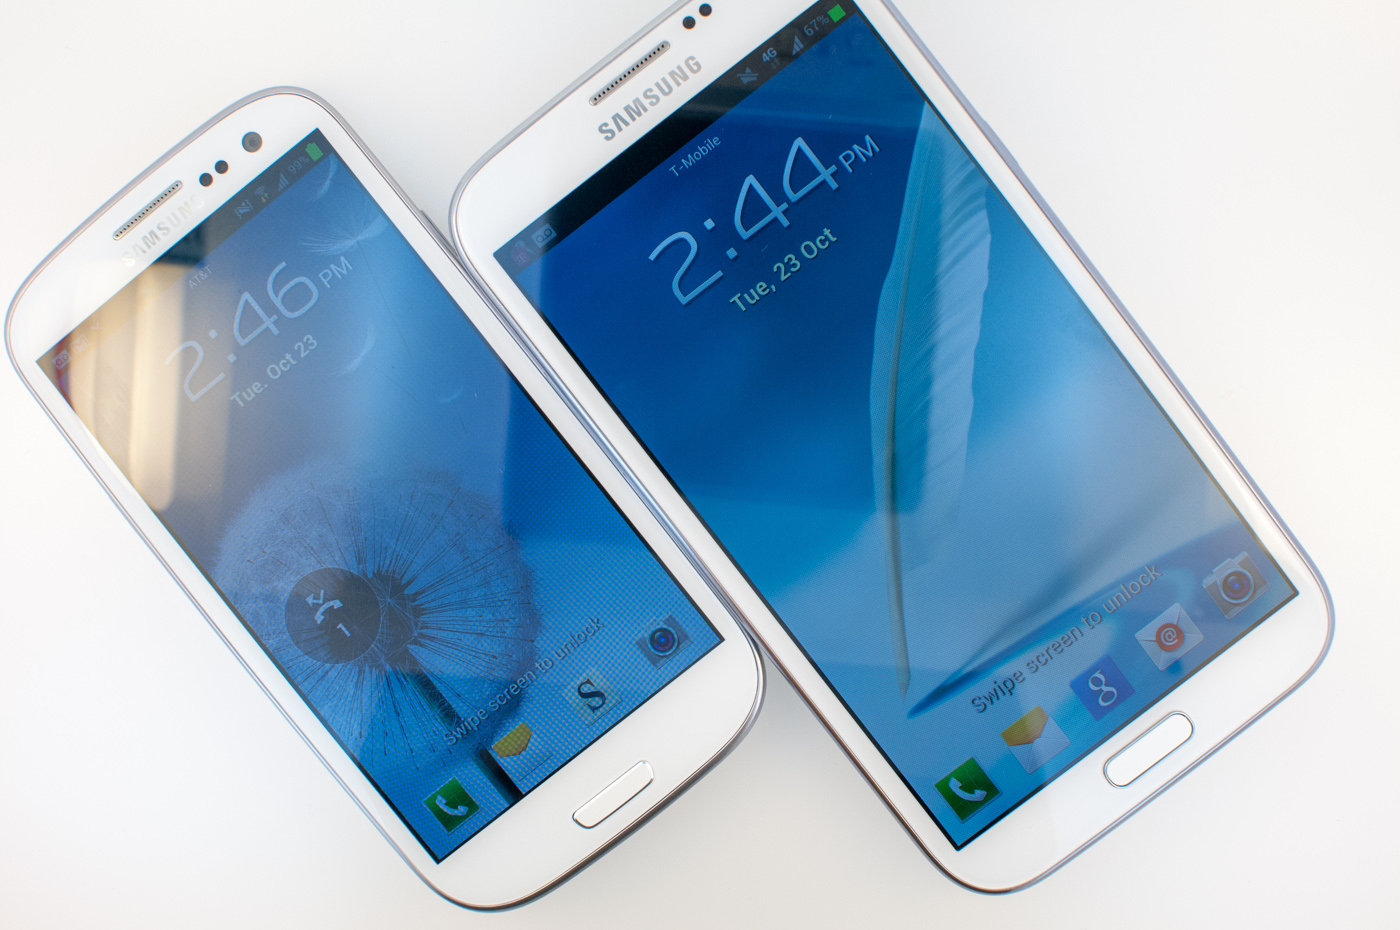 Samsung Galaxy Note 2 Review (T-Mobile) - The Phablet Returns